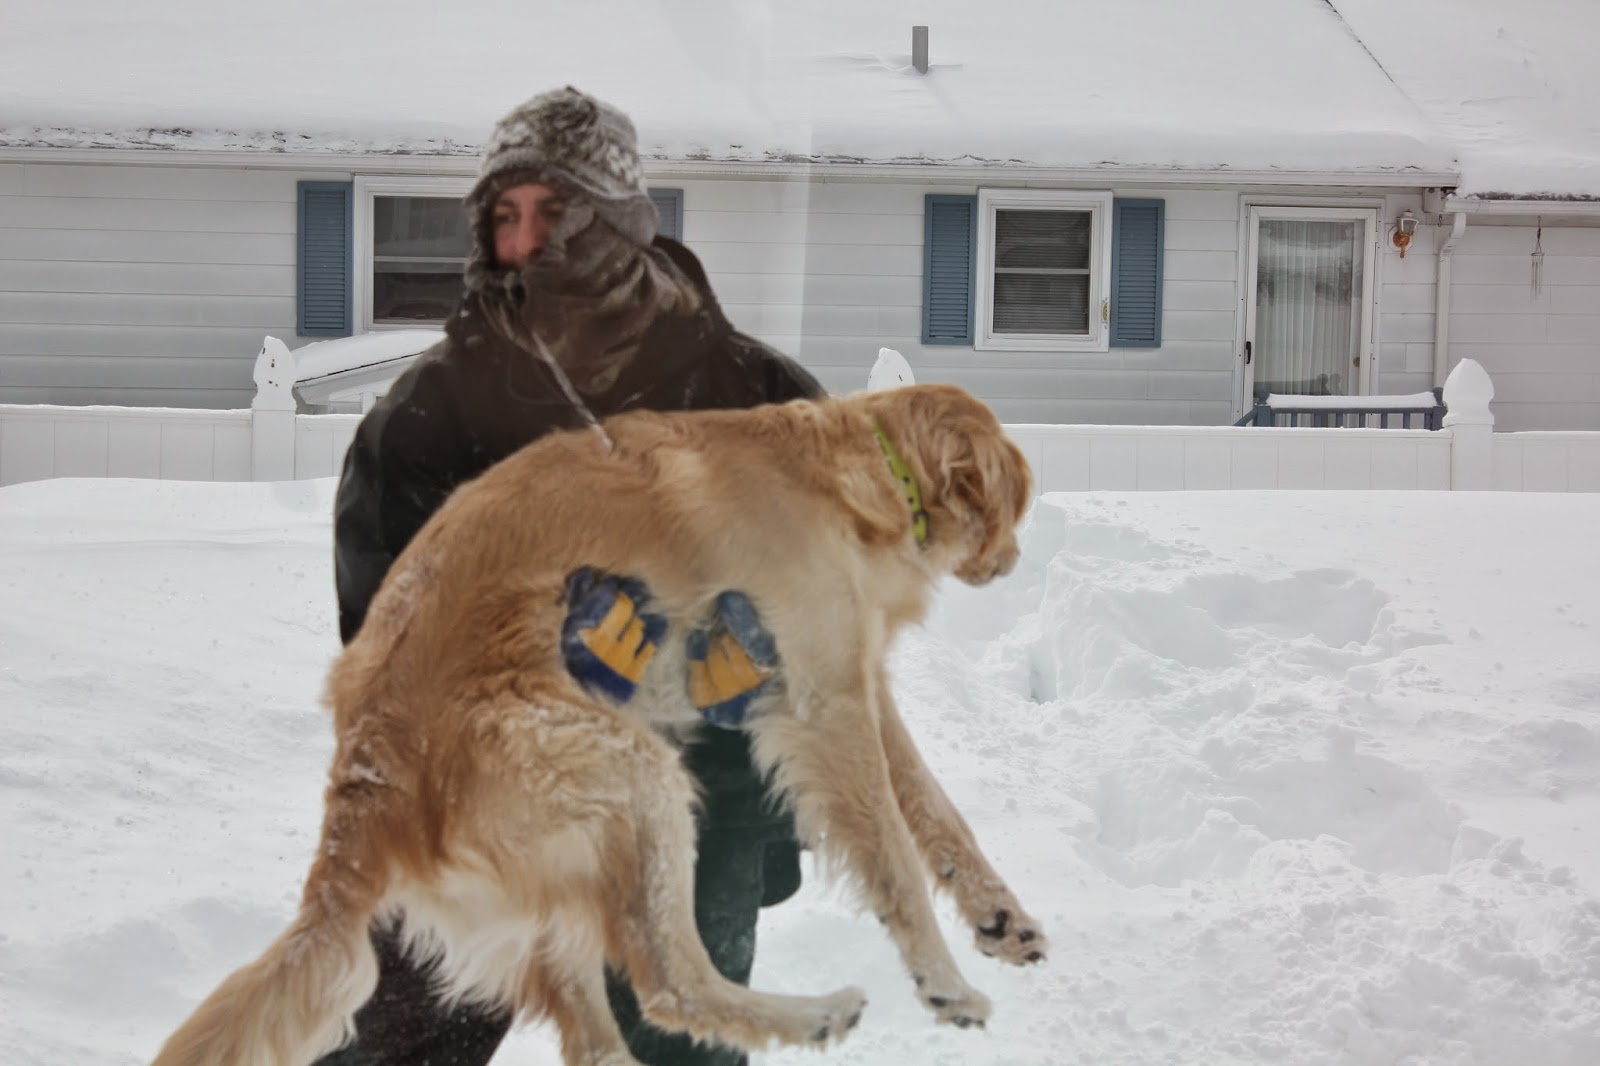 owner carrying do in snow